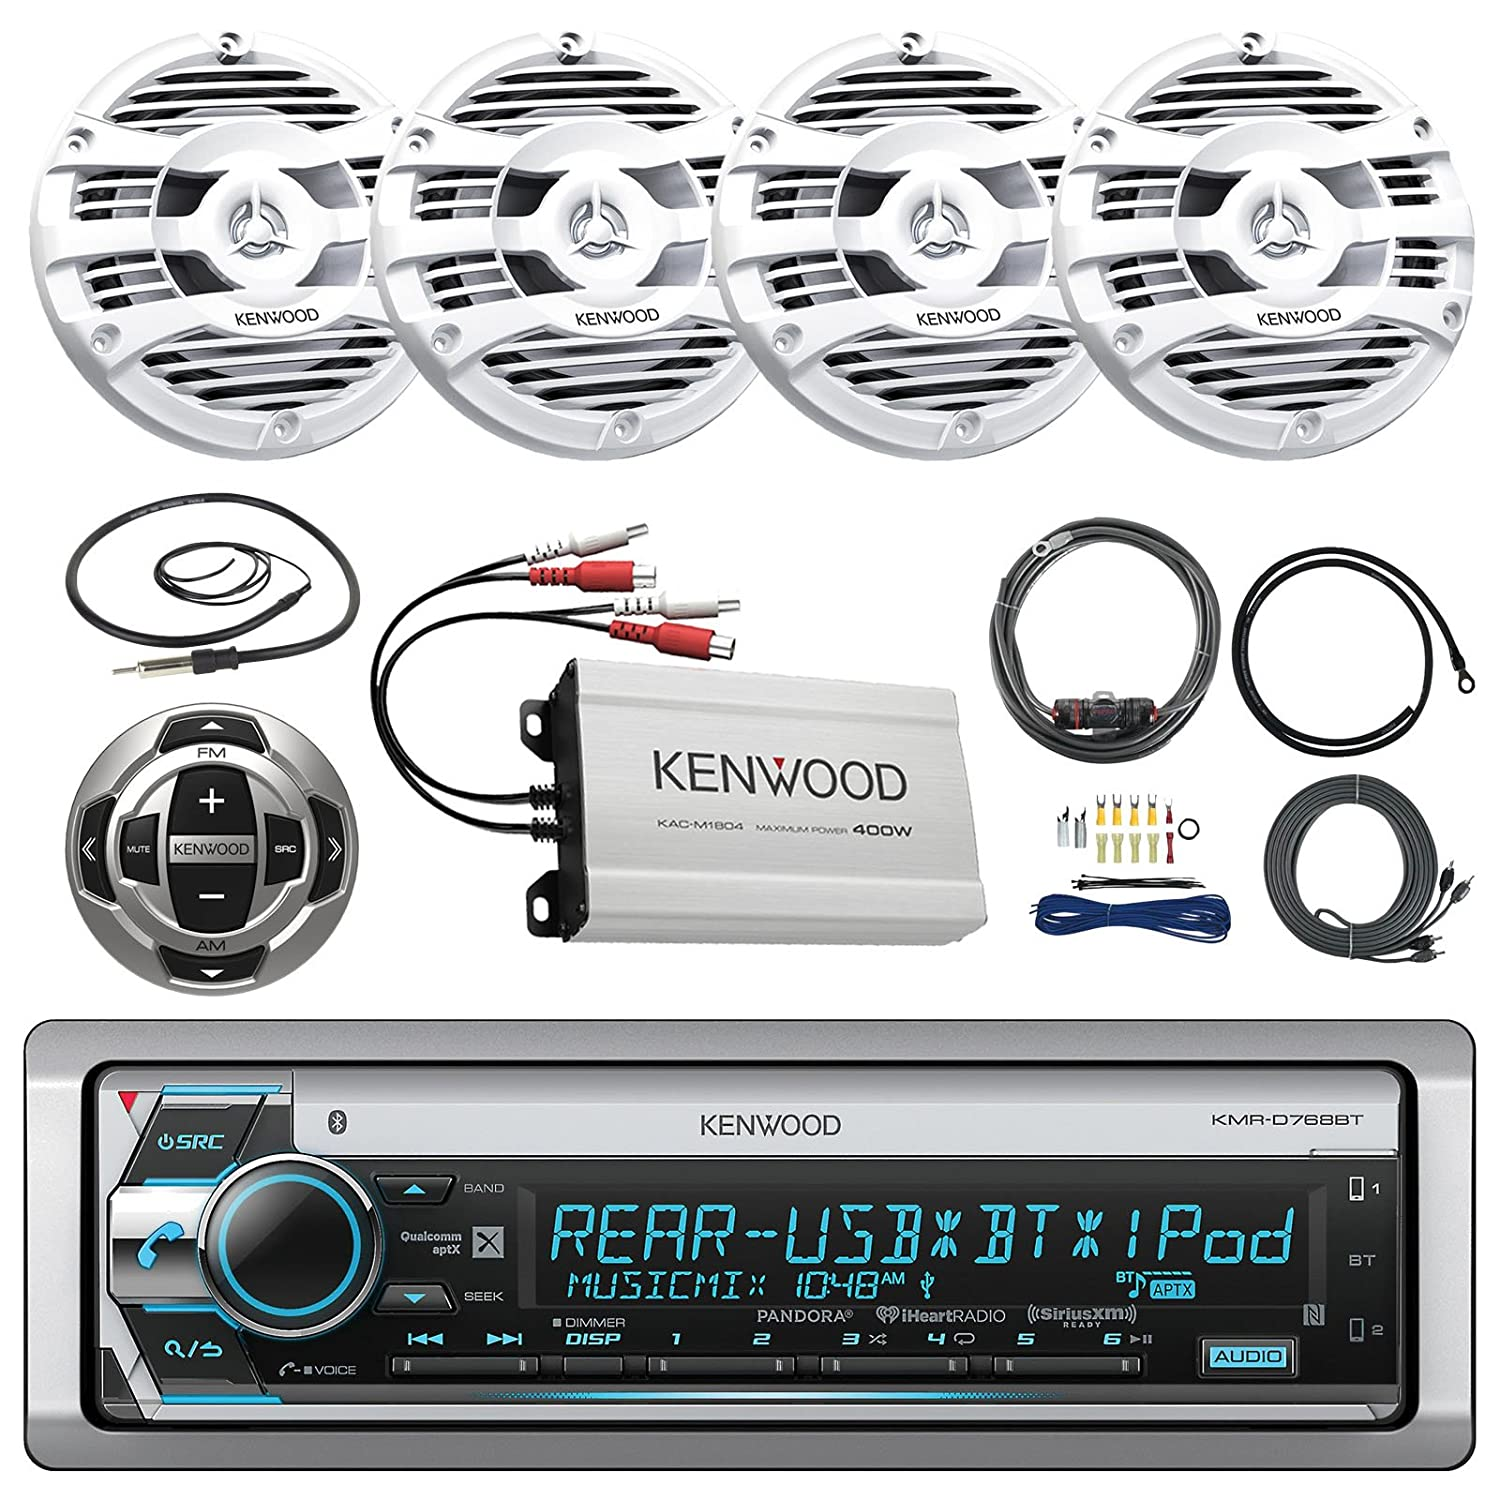 Kenwood Kmr 550u Wiring Diagram Schematic Diagrams Dnx571hd Amazon Com Kmrd765bt Marine Cd Receiver With Bluetooth Car Home Stereo